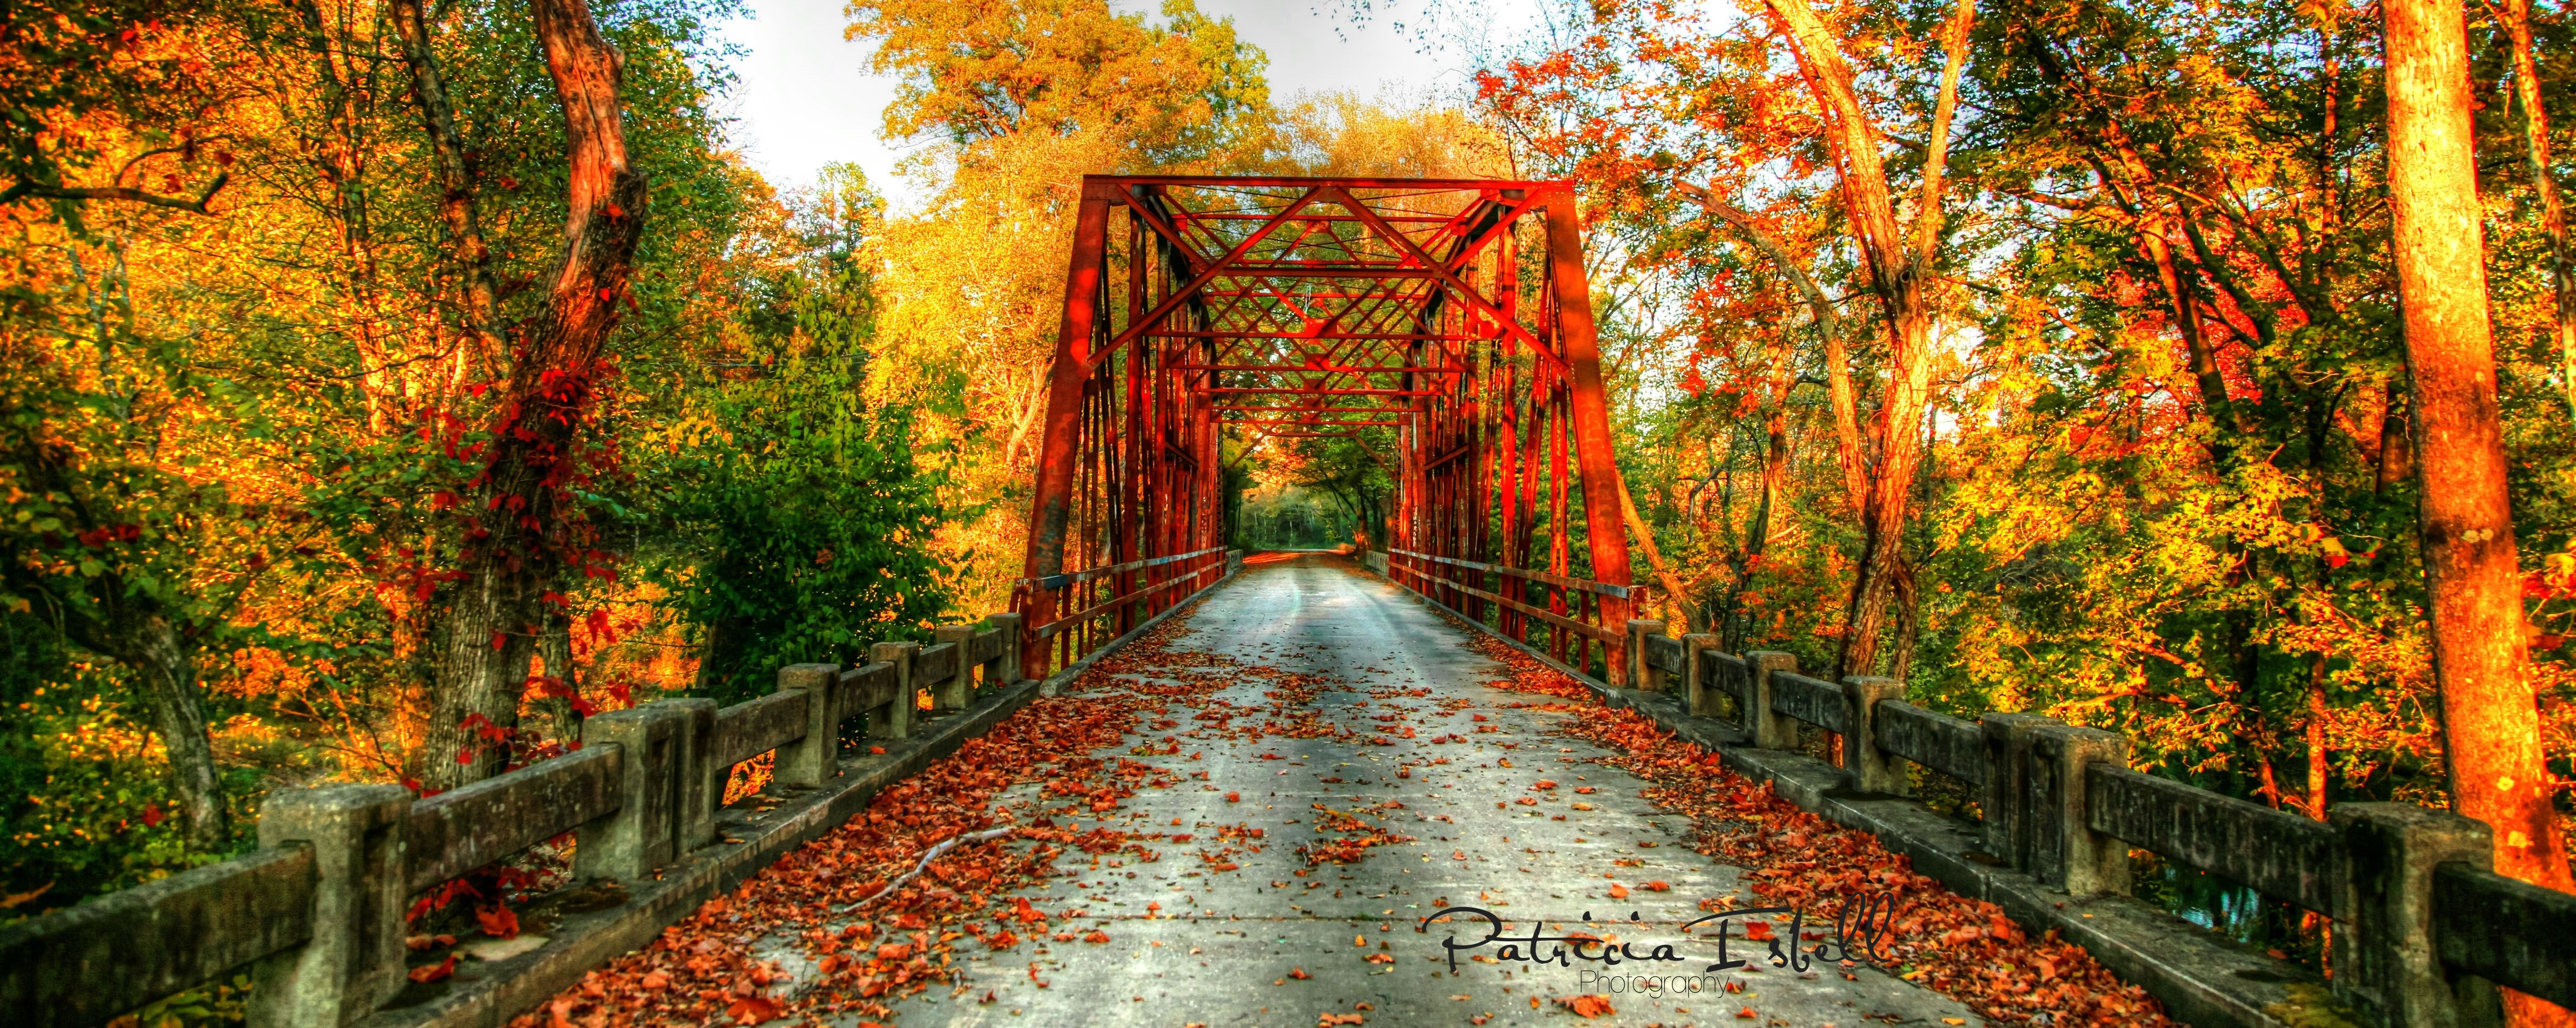 Beaver S Bend Landscape Photographers Landscaping And